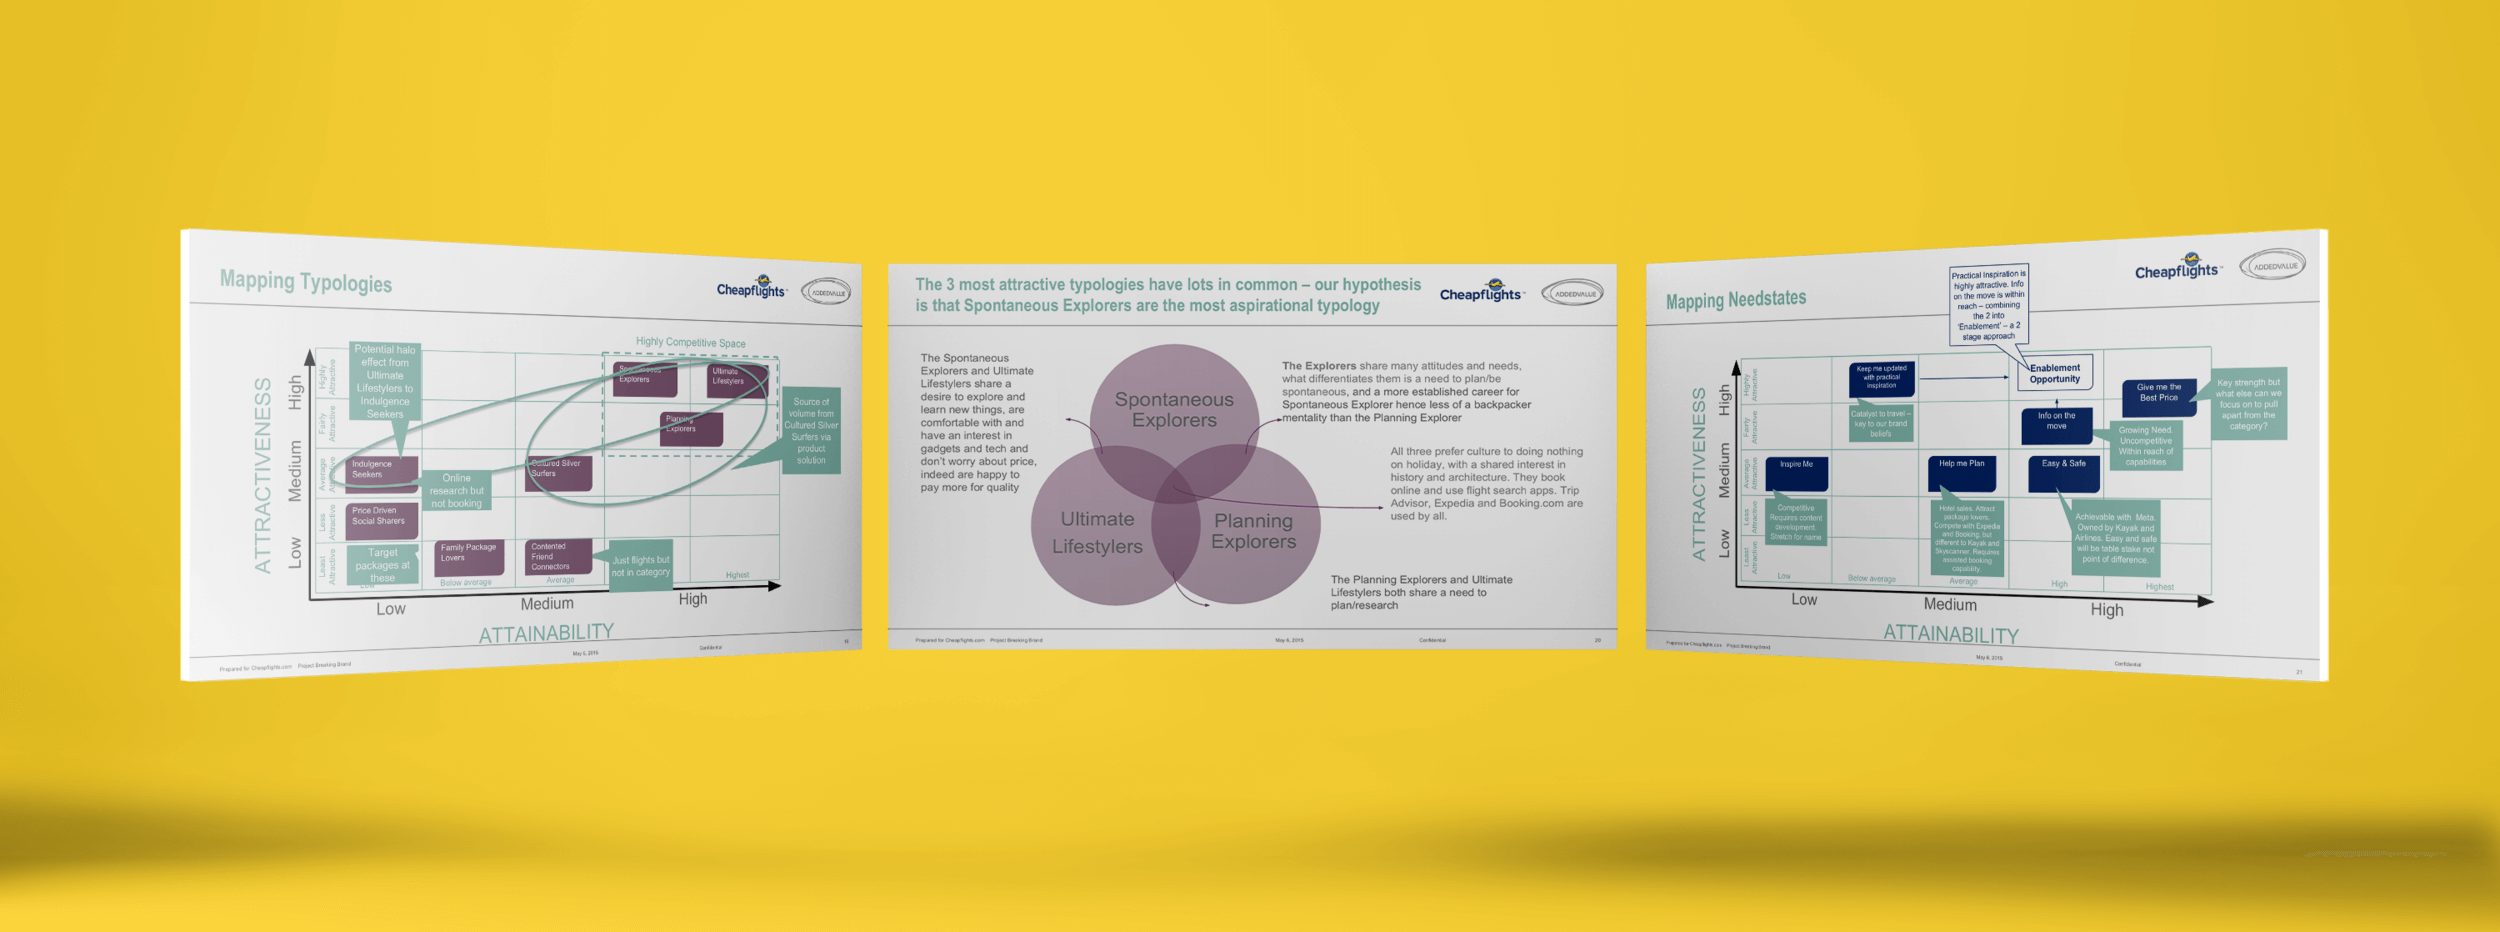 cf-rebrand-workshop-mapping-mockup-screens.png